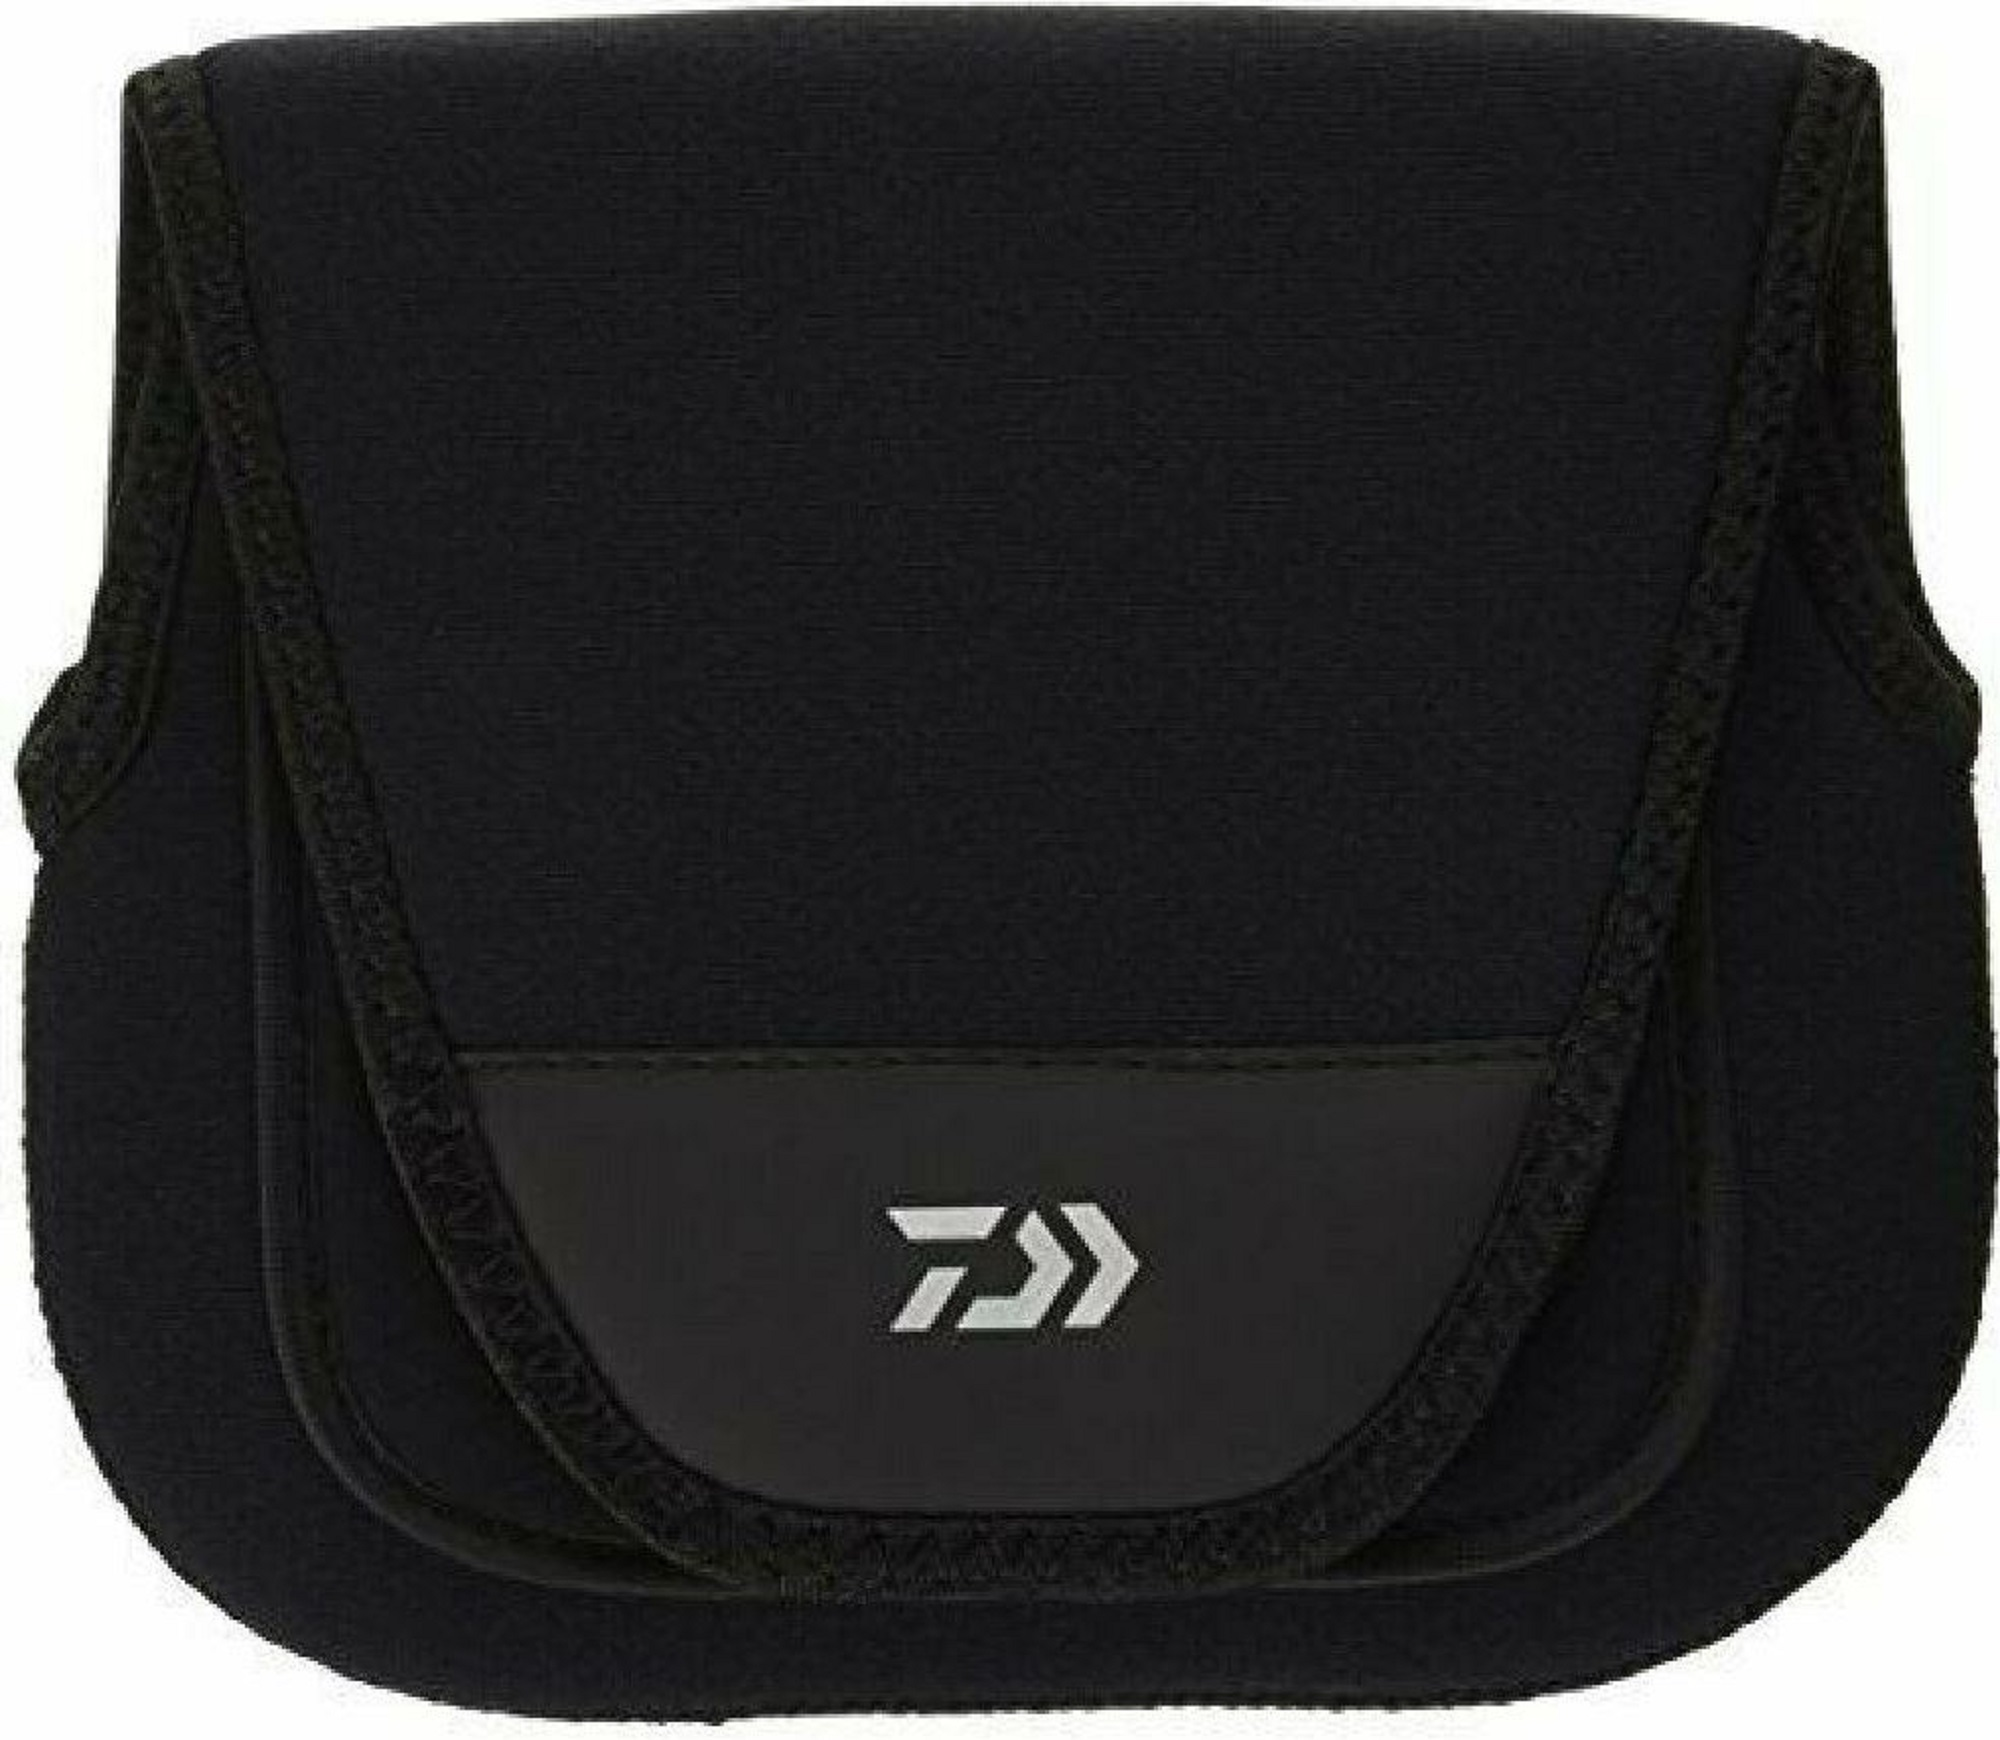 Daiwa Reel Bag Thick Neoprene Case For 3000-4000 Reels Size SP-MH (7122)